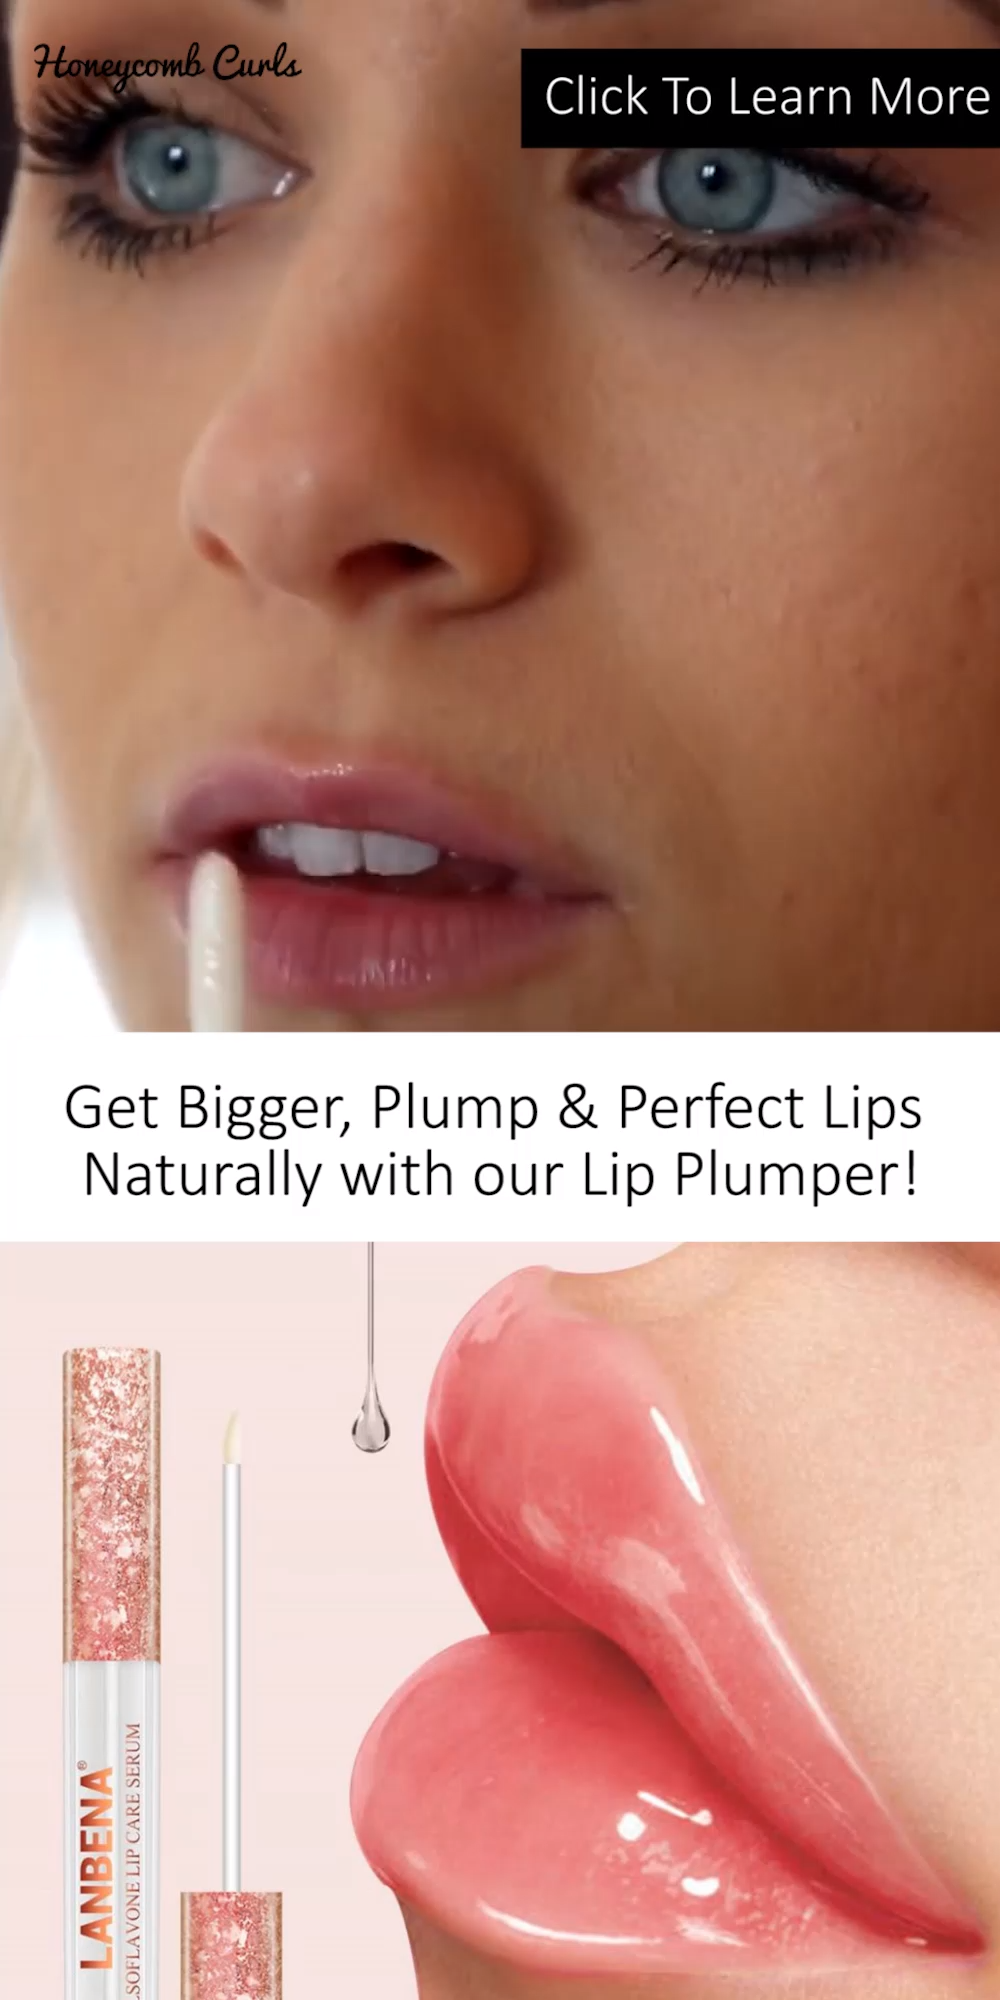 Get Bigger, Plump & Perfect Lips Naturally in 2020